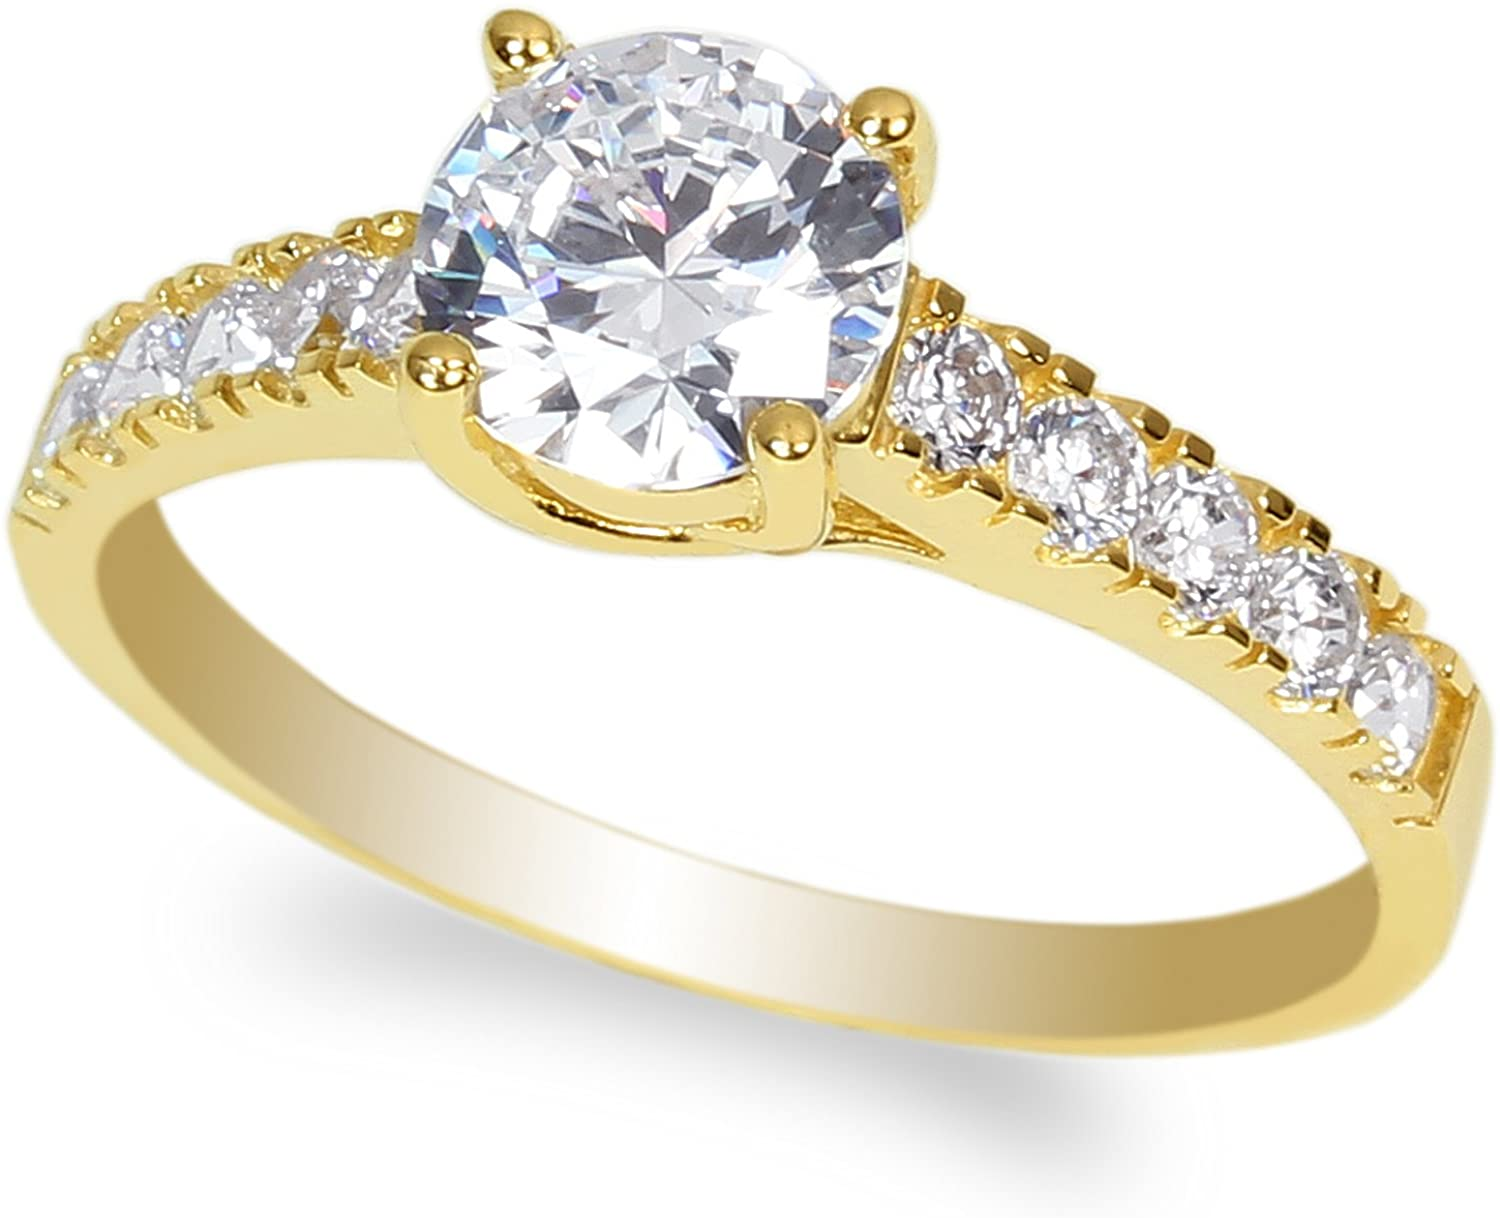 JamesJenny 10K Yellow Gold 0.9ct Round Clear CZ Beautiful Solitaire Ring Size 4-10